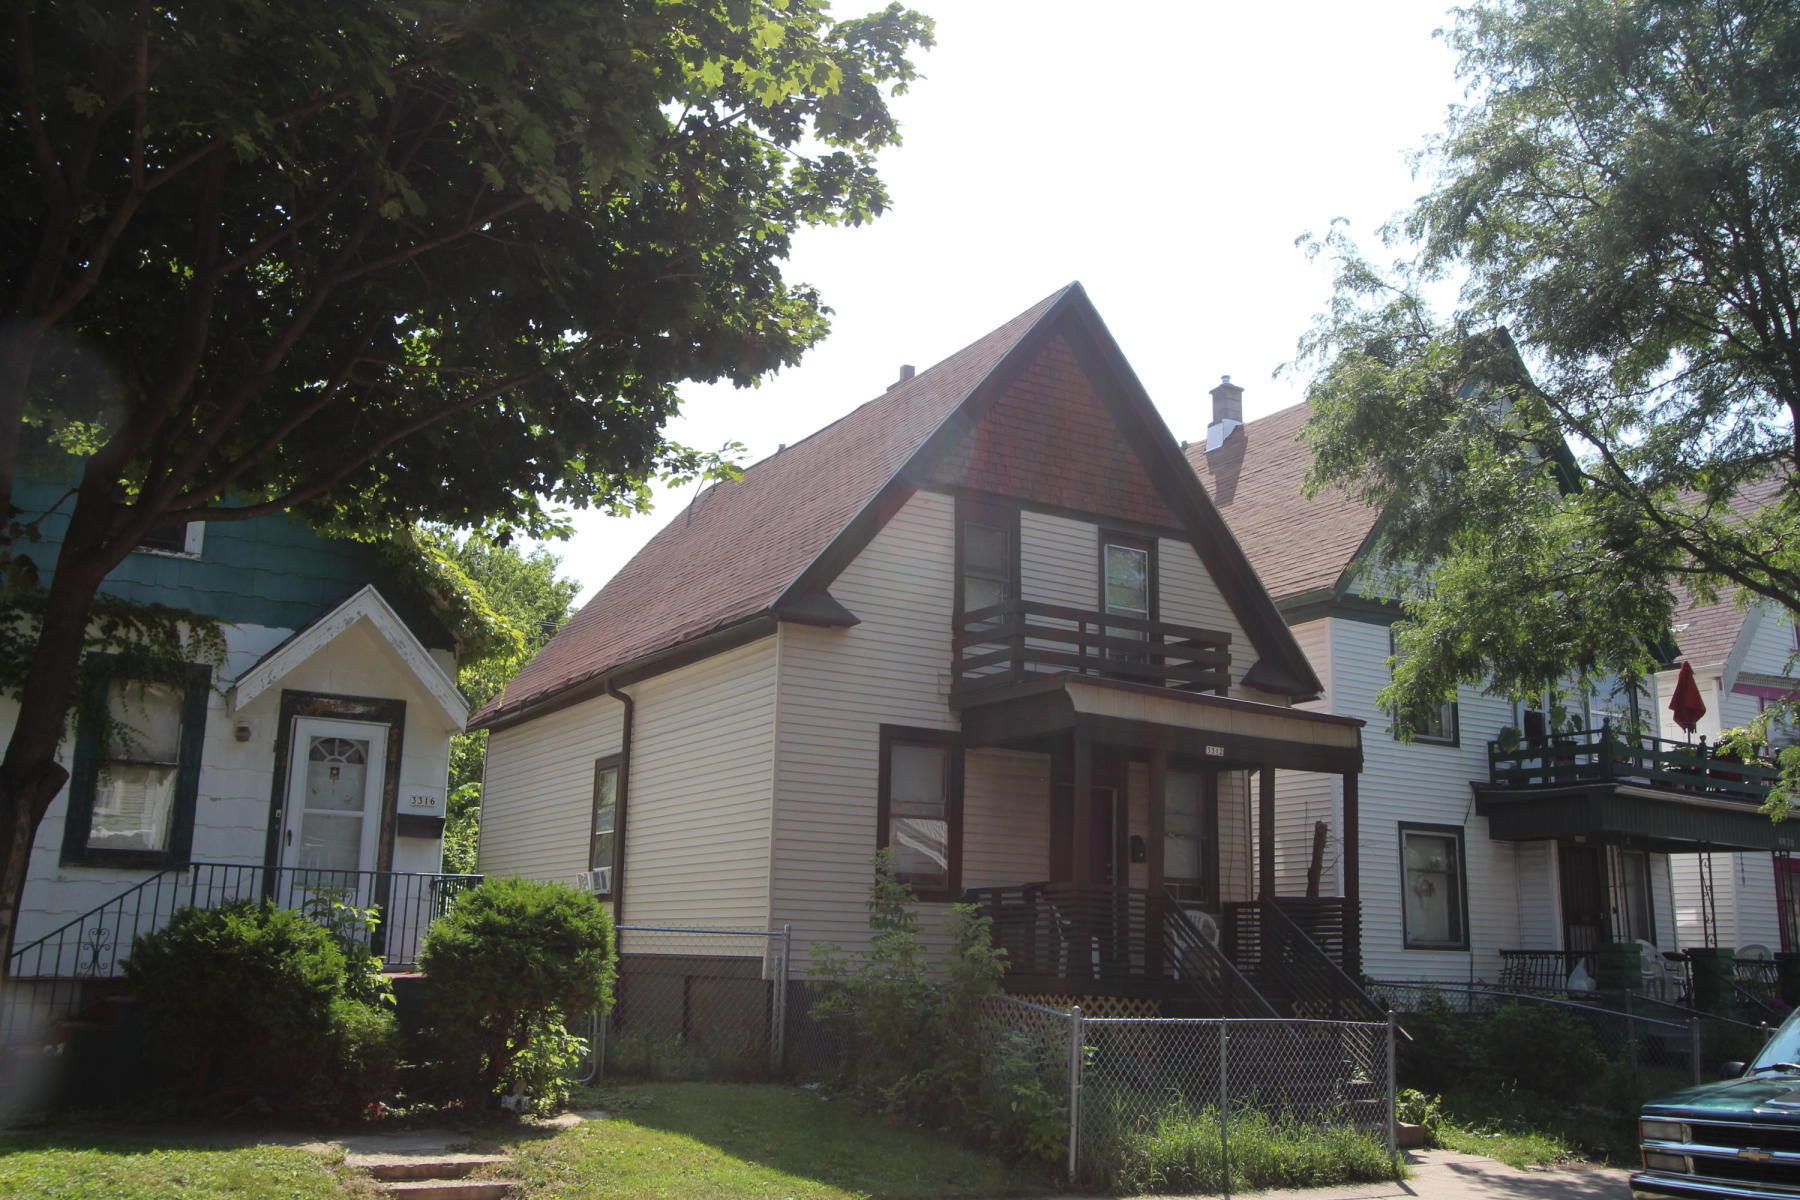 3312 11th St, Milwaukee, Wisconsin 53206, 4 Bedrooms Bedrooms, ,1 BathroomBathrooms,Single-Family,For Sale,11th St,1643417